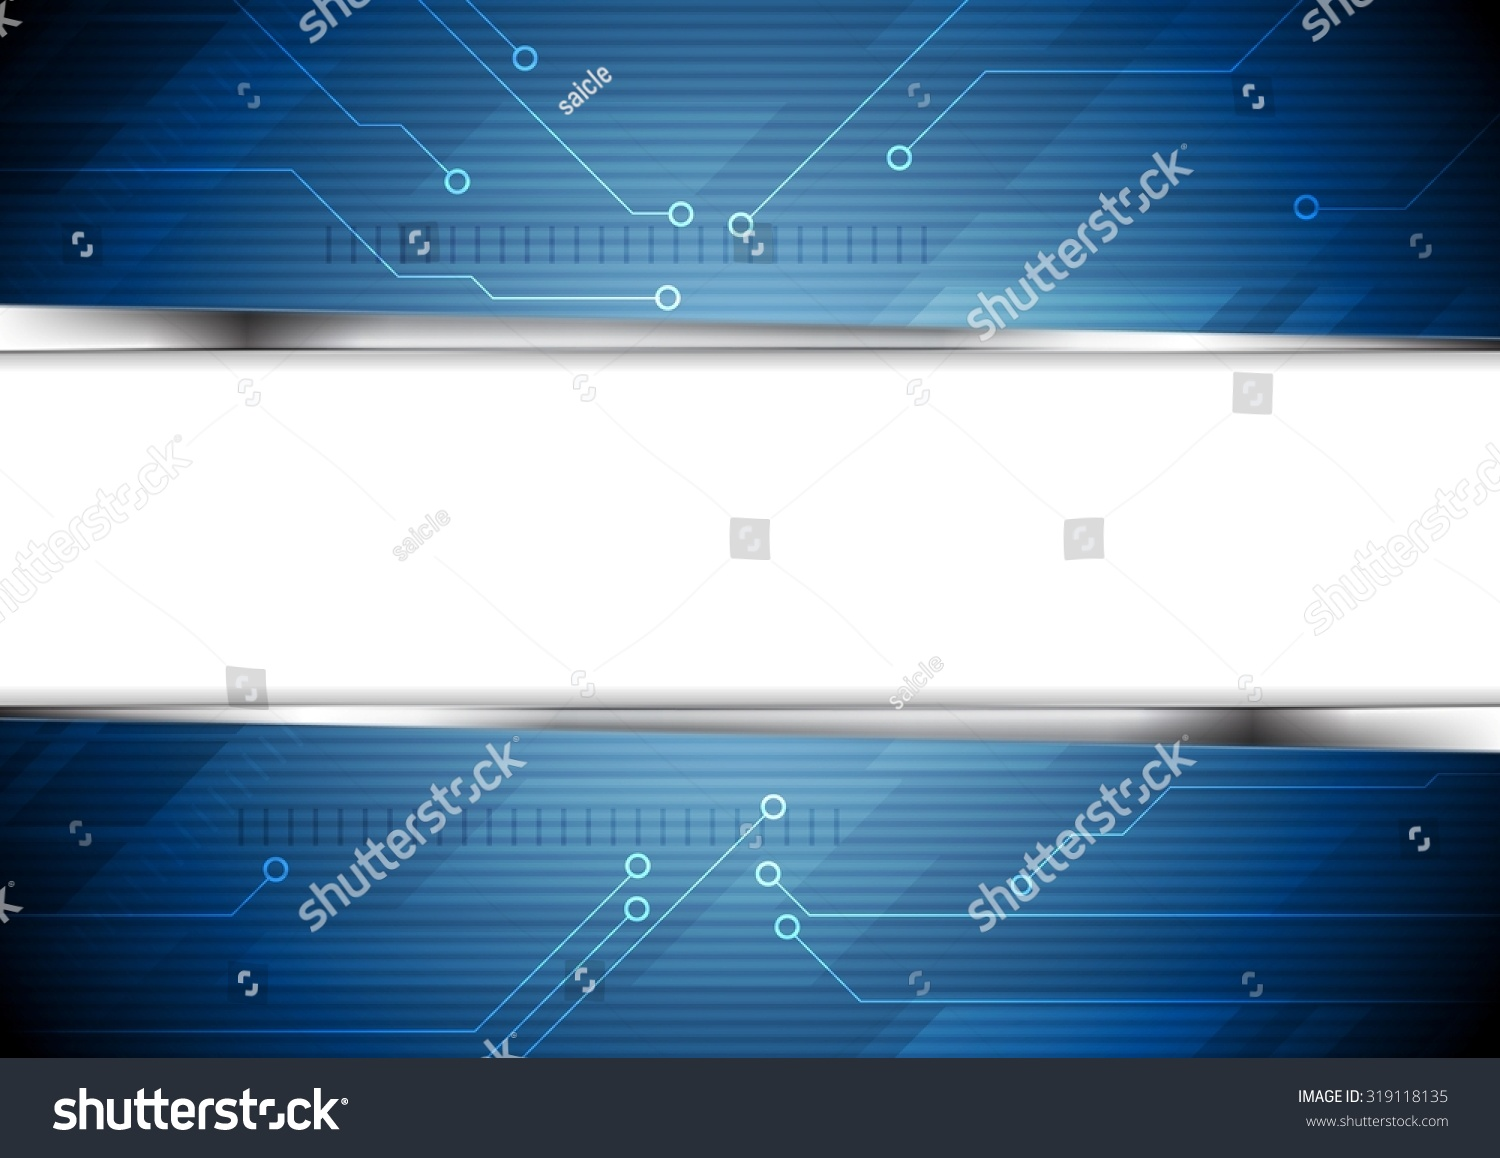 Tech Striped Background Circuit Board Elements Stock Vector Royalty Design Electrical Circuits With